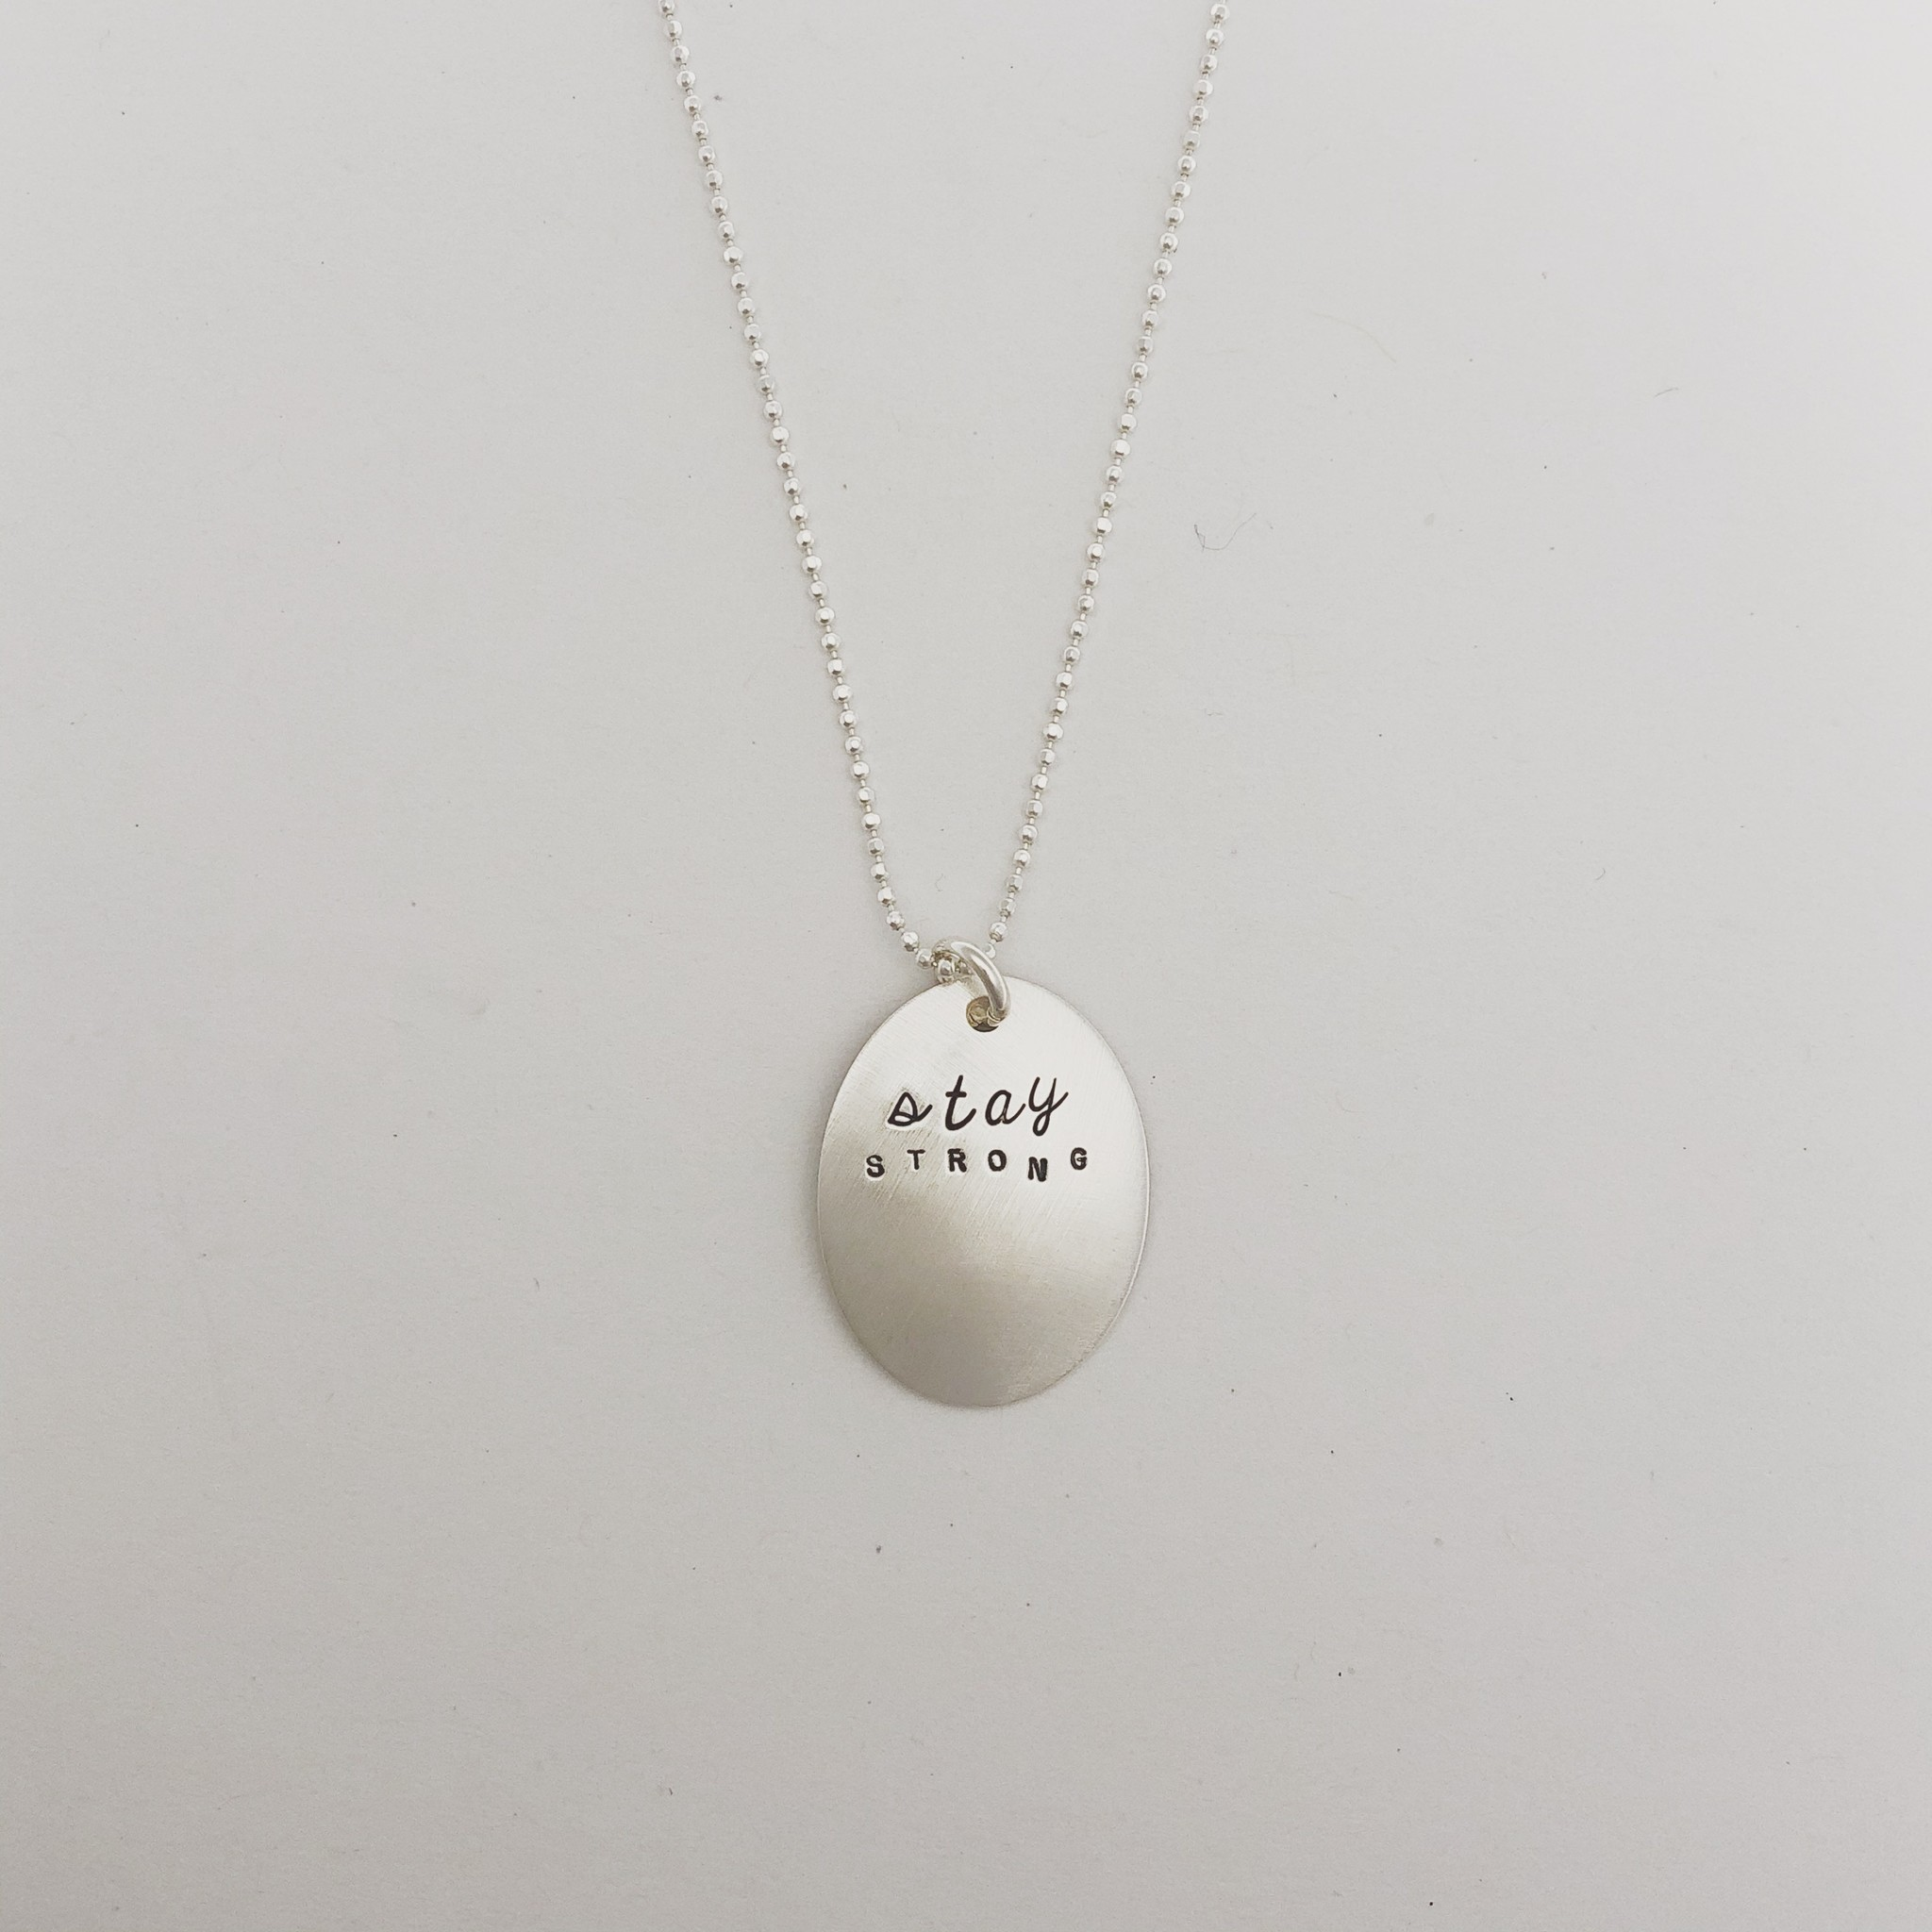 """Andrea Waines """"Stay Strong"""" Inspired Oval Necklace 18"""""""